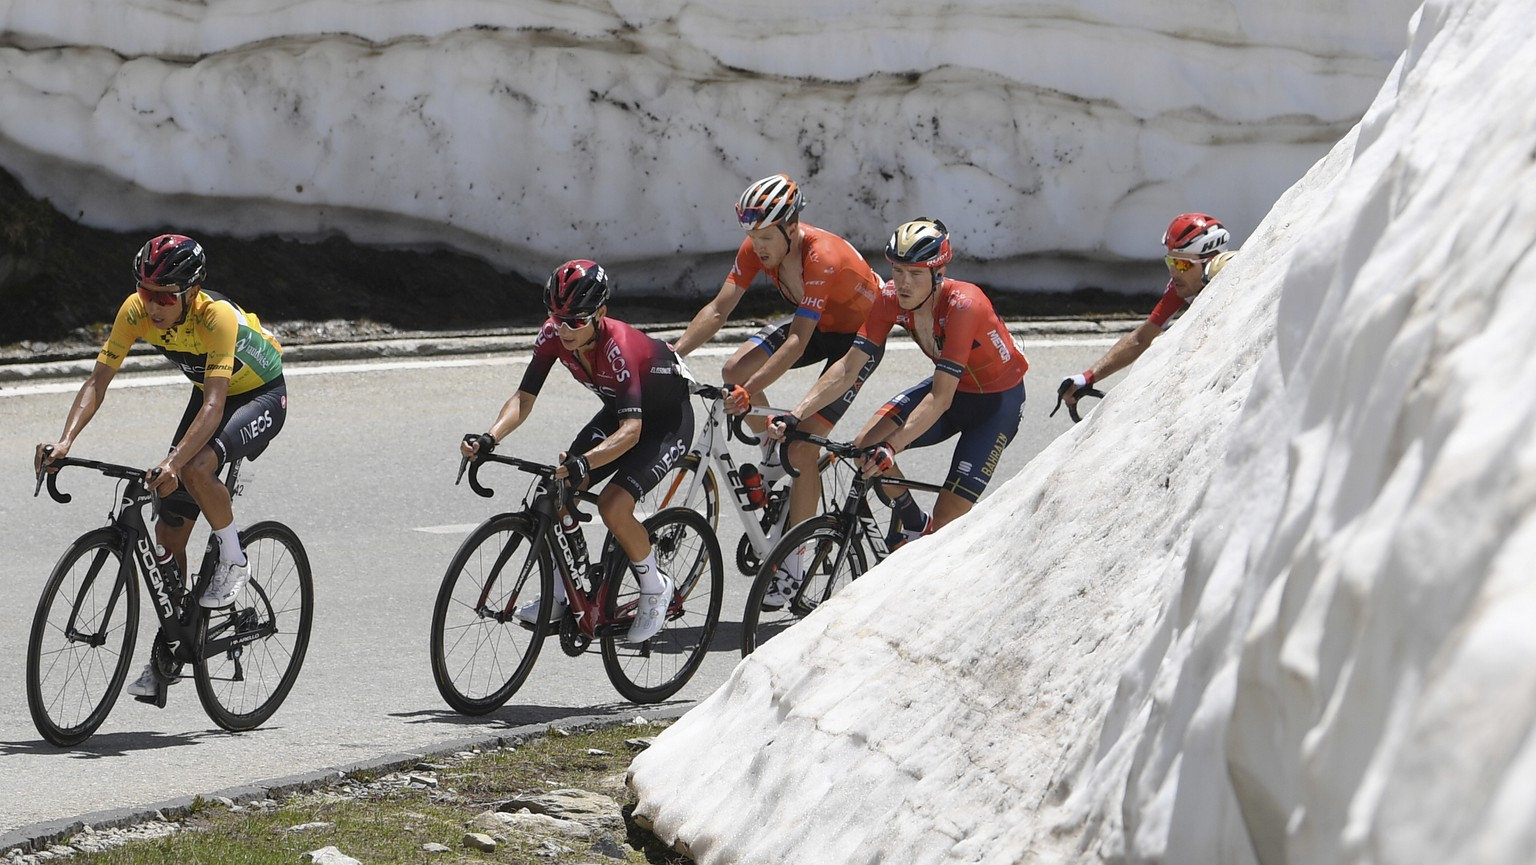 Leader Egan Bernal from Colombia, left, is followed by Ineos team mates and by Australias Rohan Dennis, 4th left, team Bahrain-Merida, at the Nufenen pass during the ninth and final stage, a 101.5 km race with start and finish in Goms, Switzerland, at the 83rd Tour de Suisse UCI ProTour cycling race, on Sunday, June 23, 2019. (Gian Ehrenzeller/Keystone via AP)